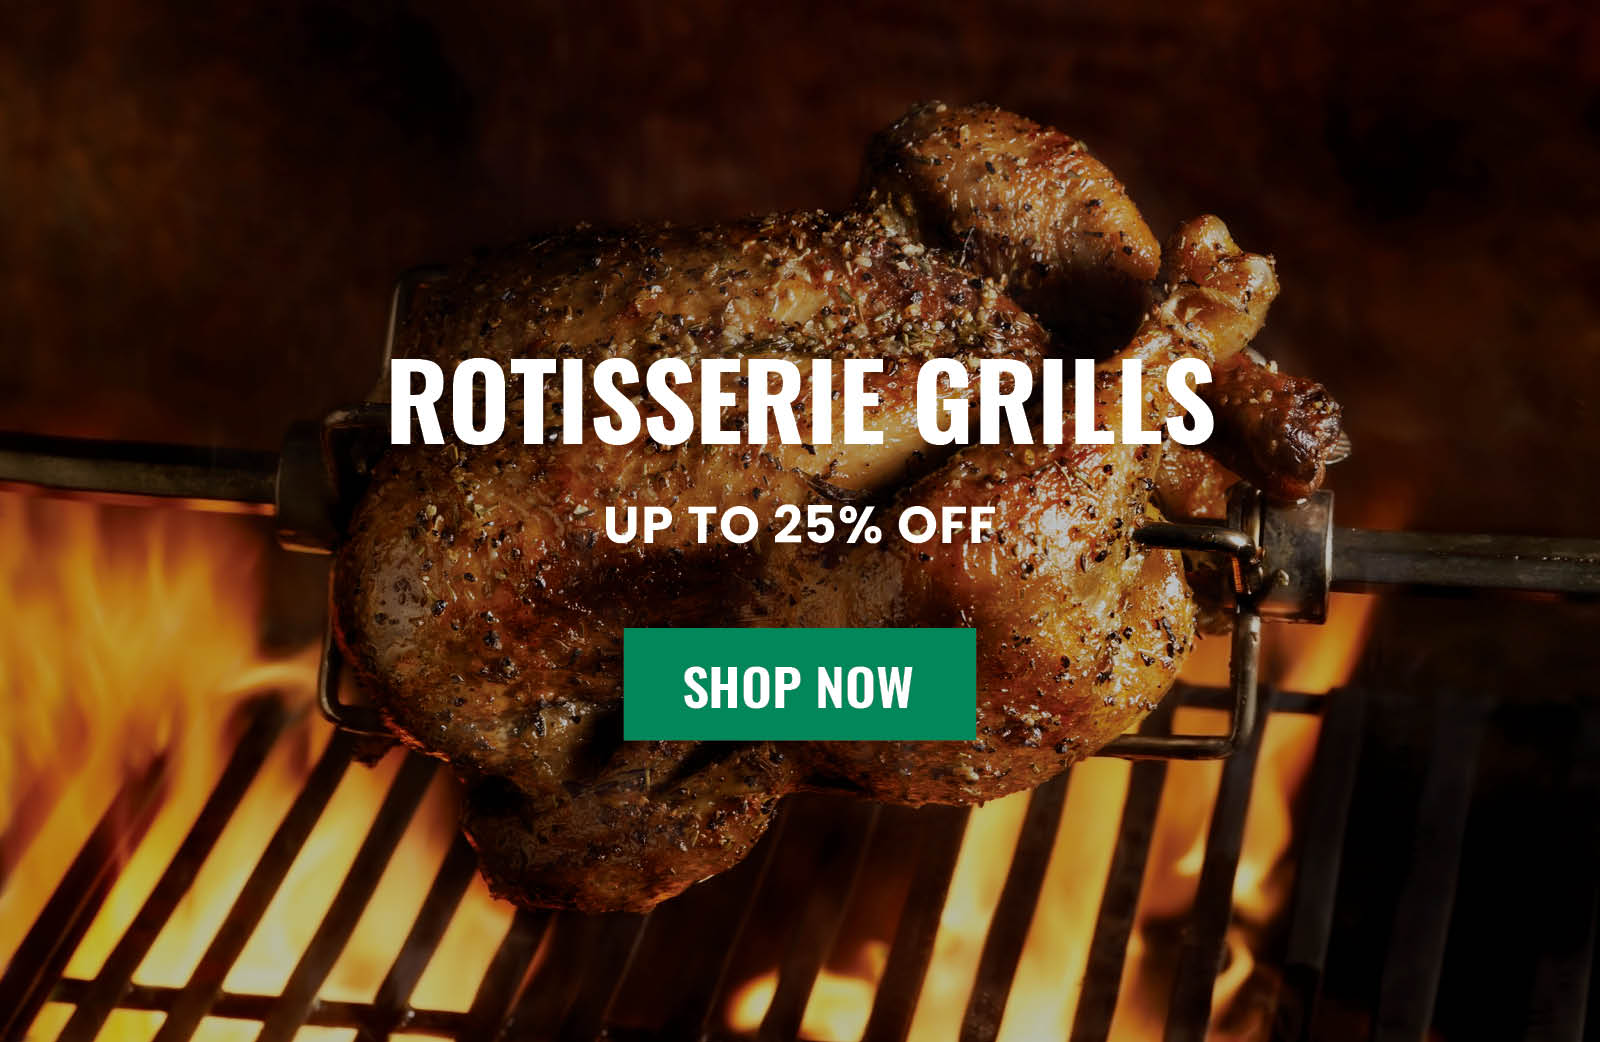 Save up to 25% on Rotisserie Grills